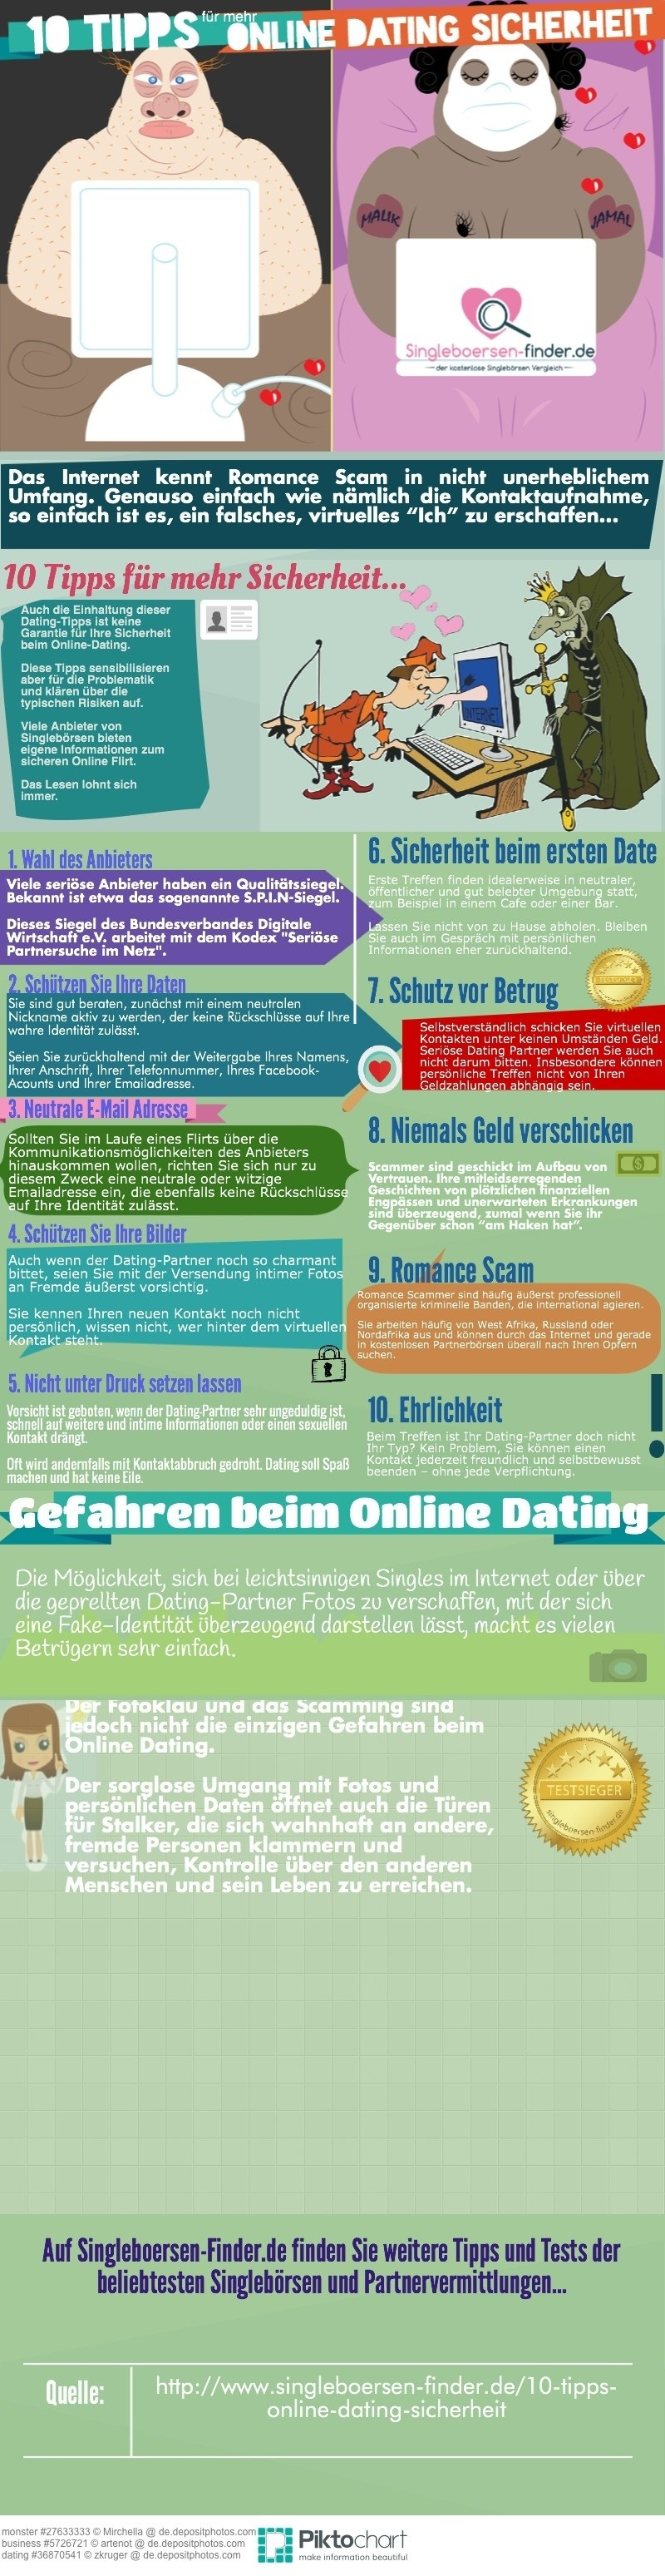 Beste kostenlose casual online-dating-sites